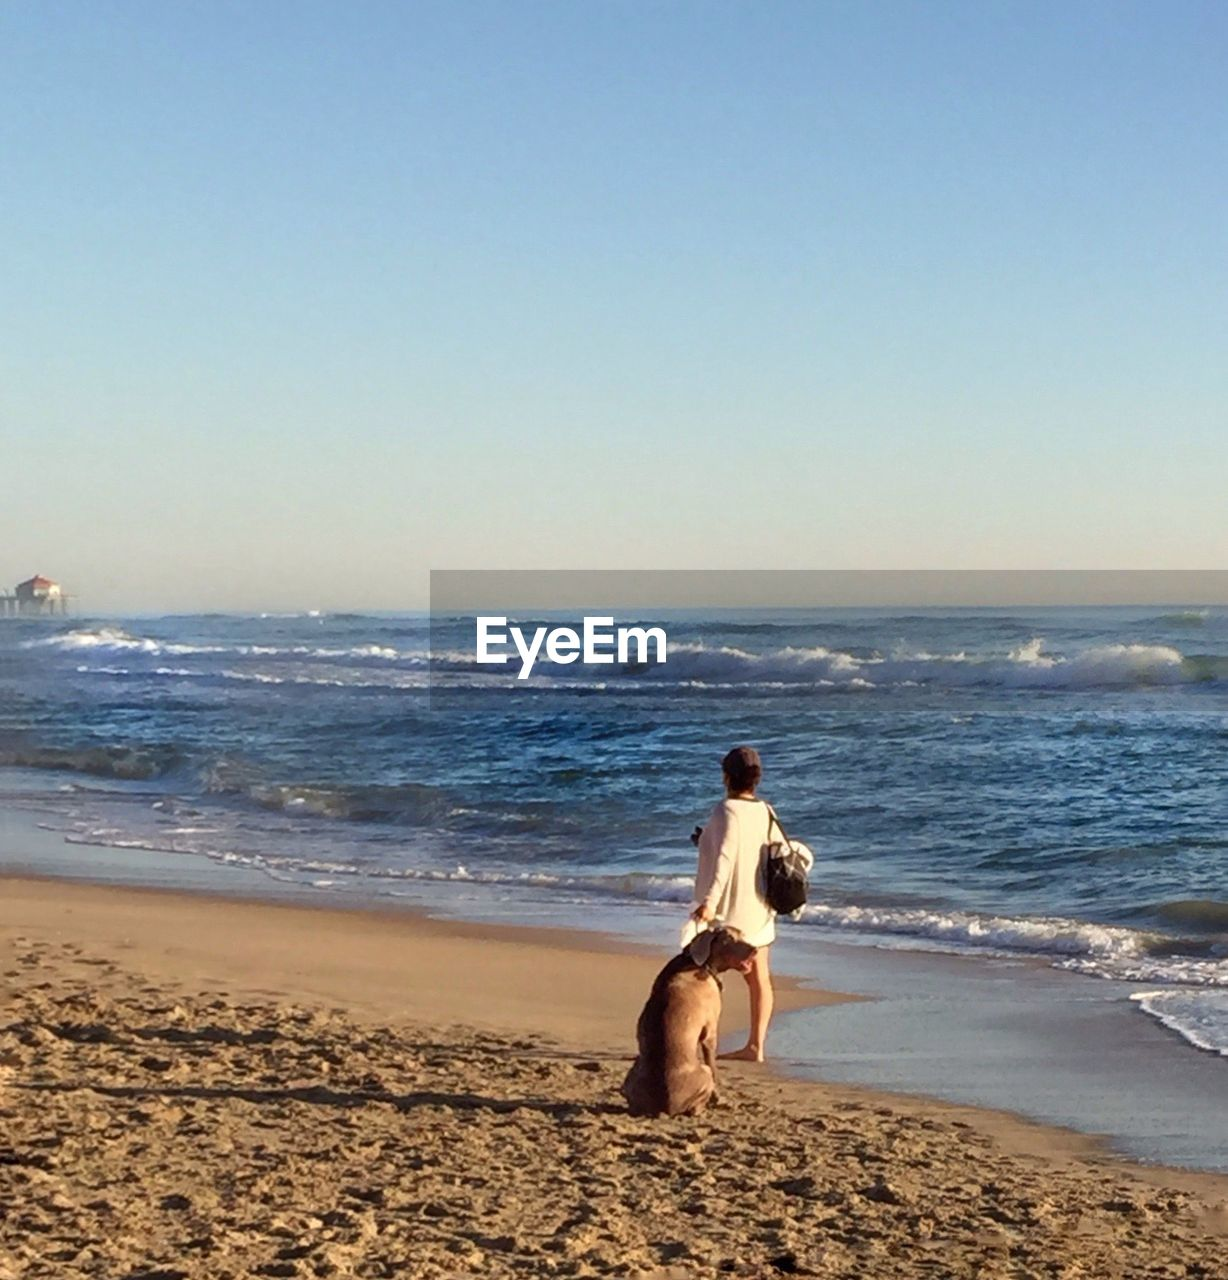 Rear view of a woman and dog standing on beach